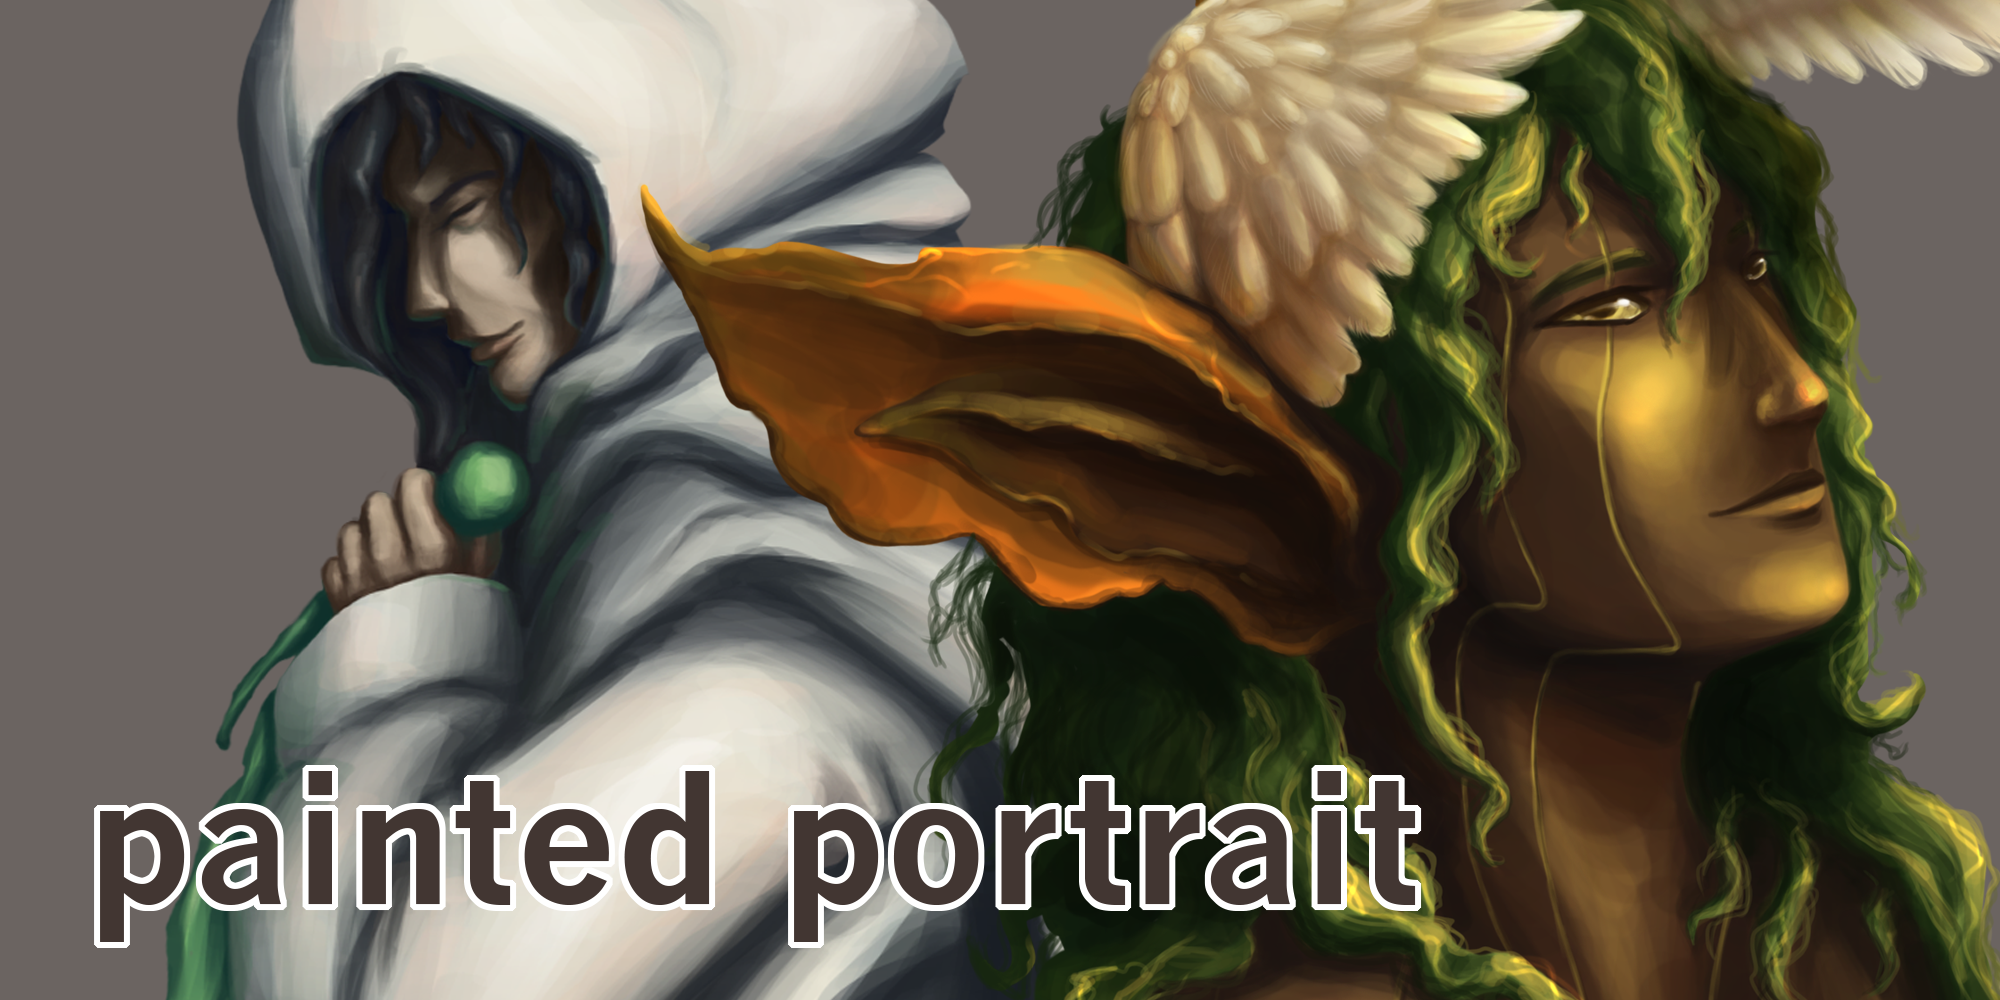 painted-portrait.png